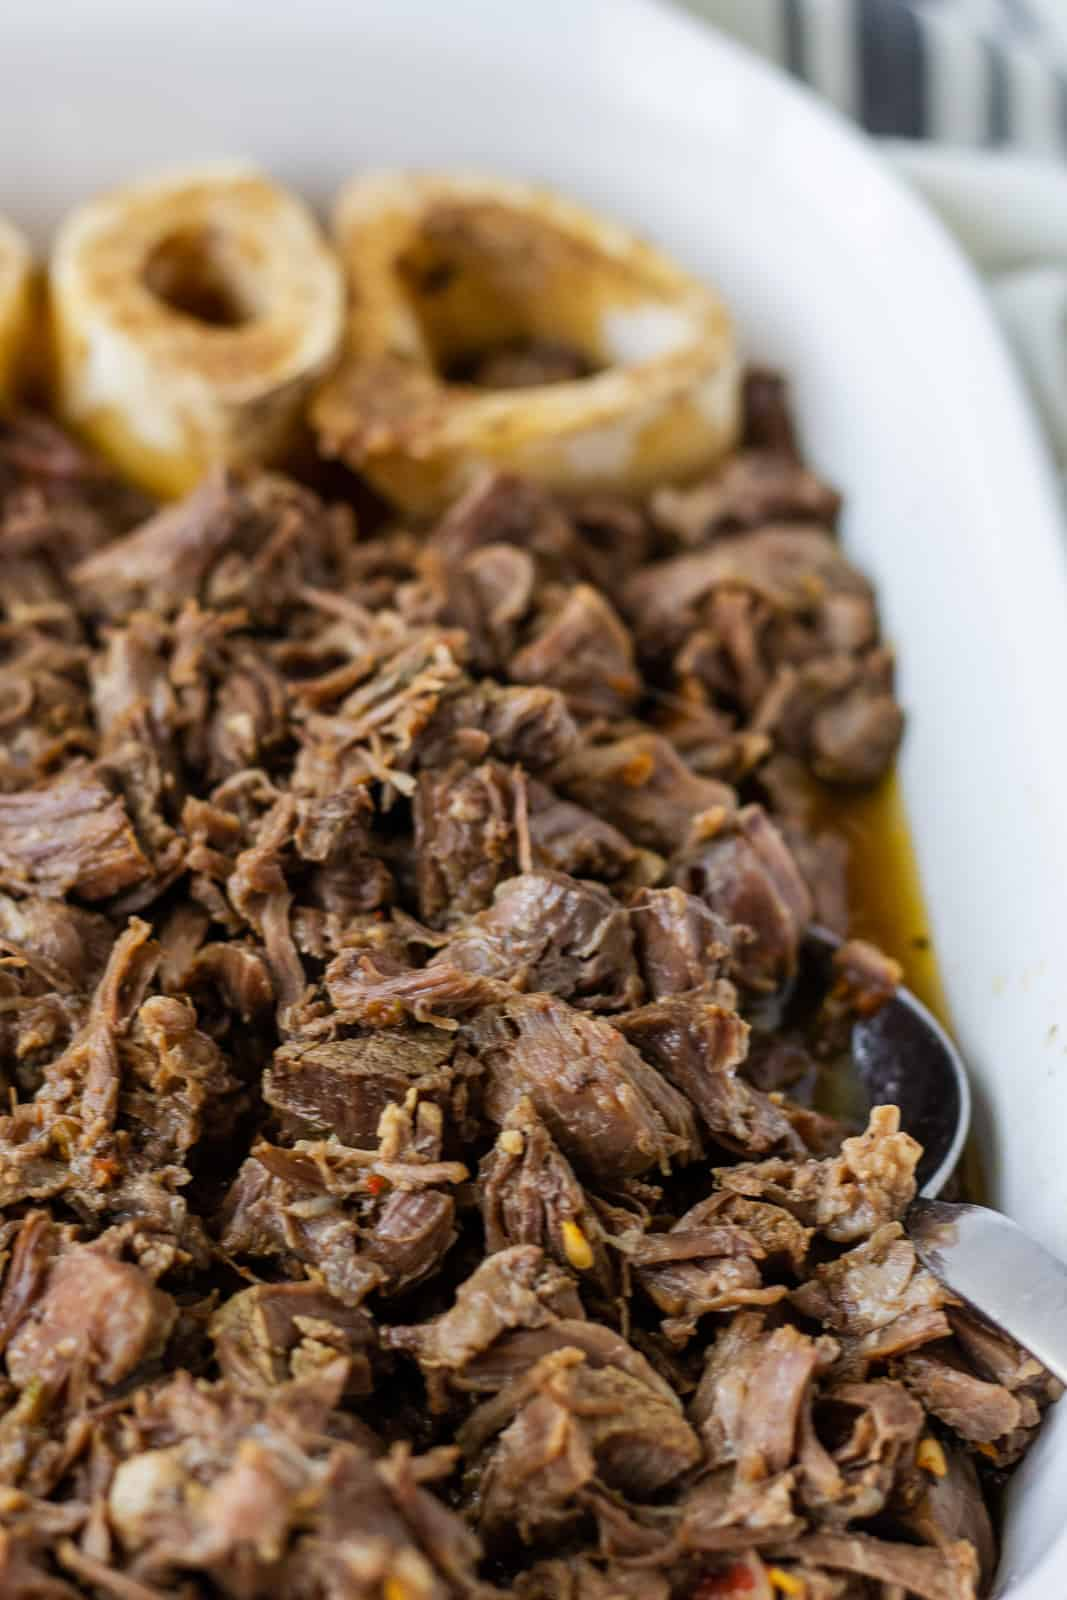 Beef bones and shredded beef in a white serving dish.